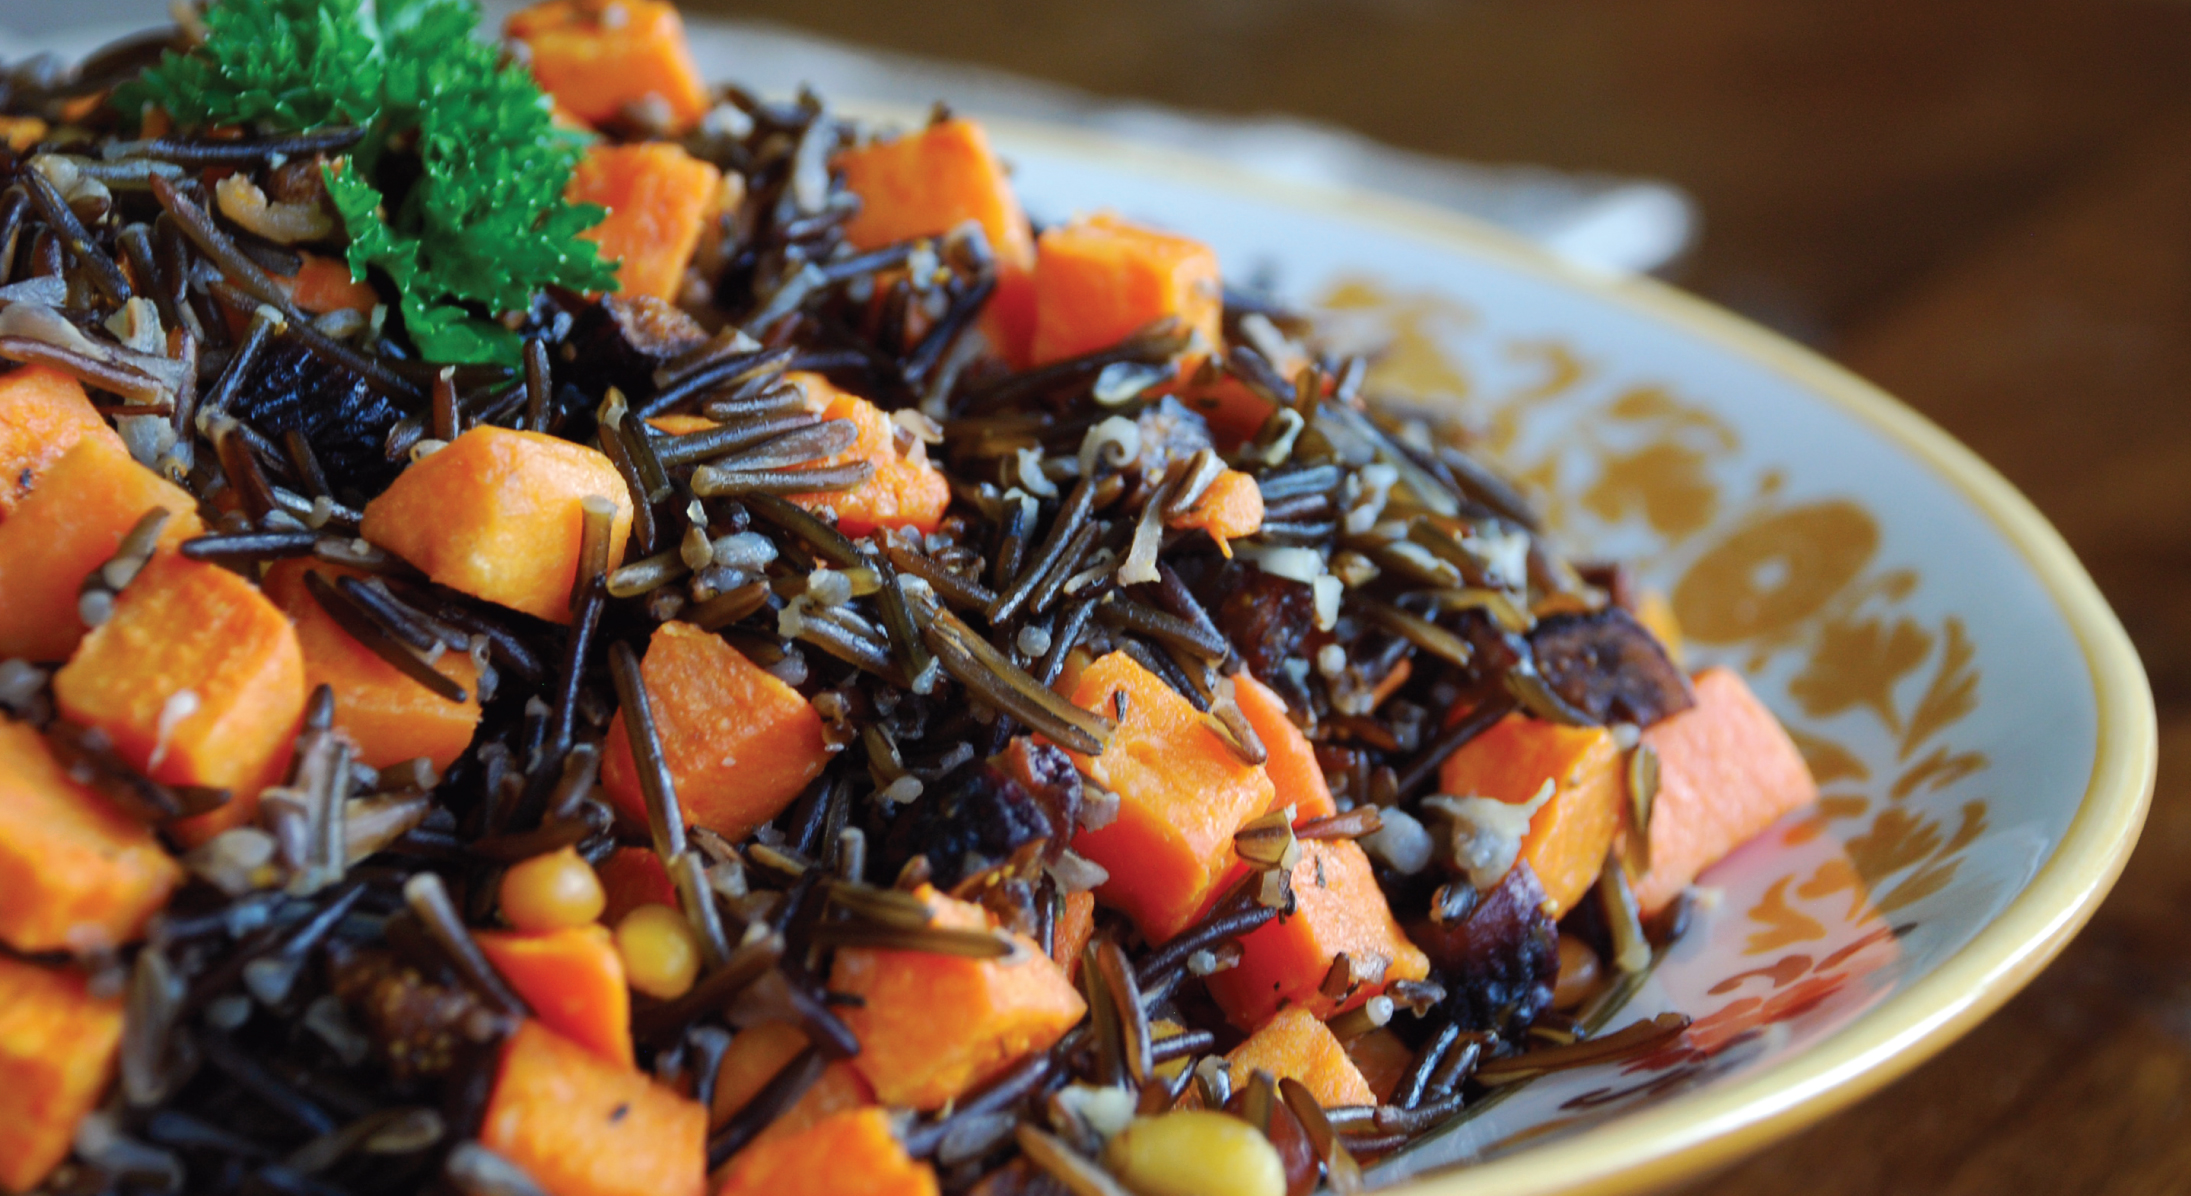 Shiloh Farms Wild Rice Stuffing with Figs